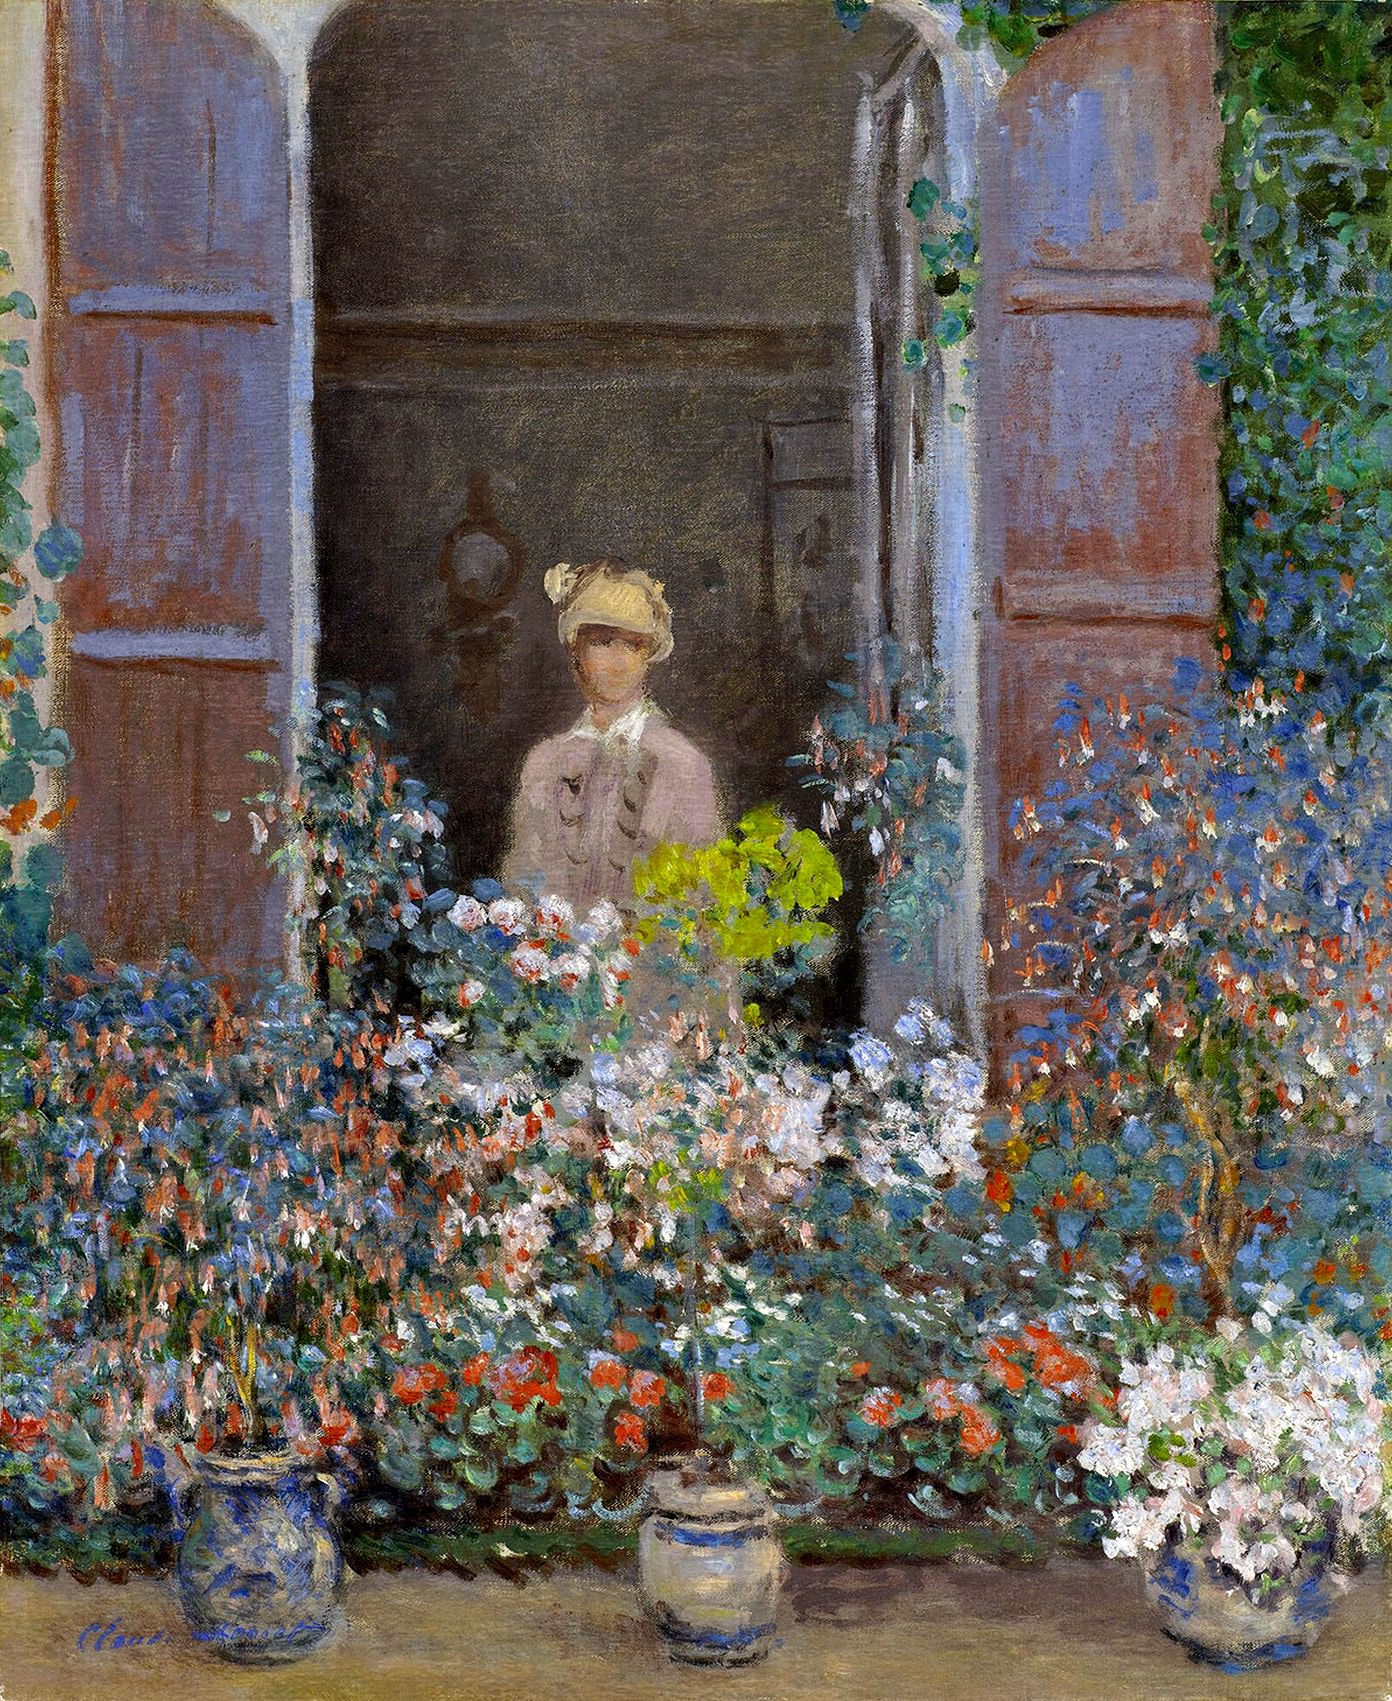 Claude Monet - Camille Monet at the Window, Argentuile 1873